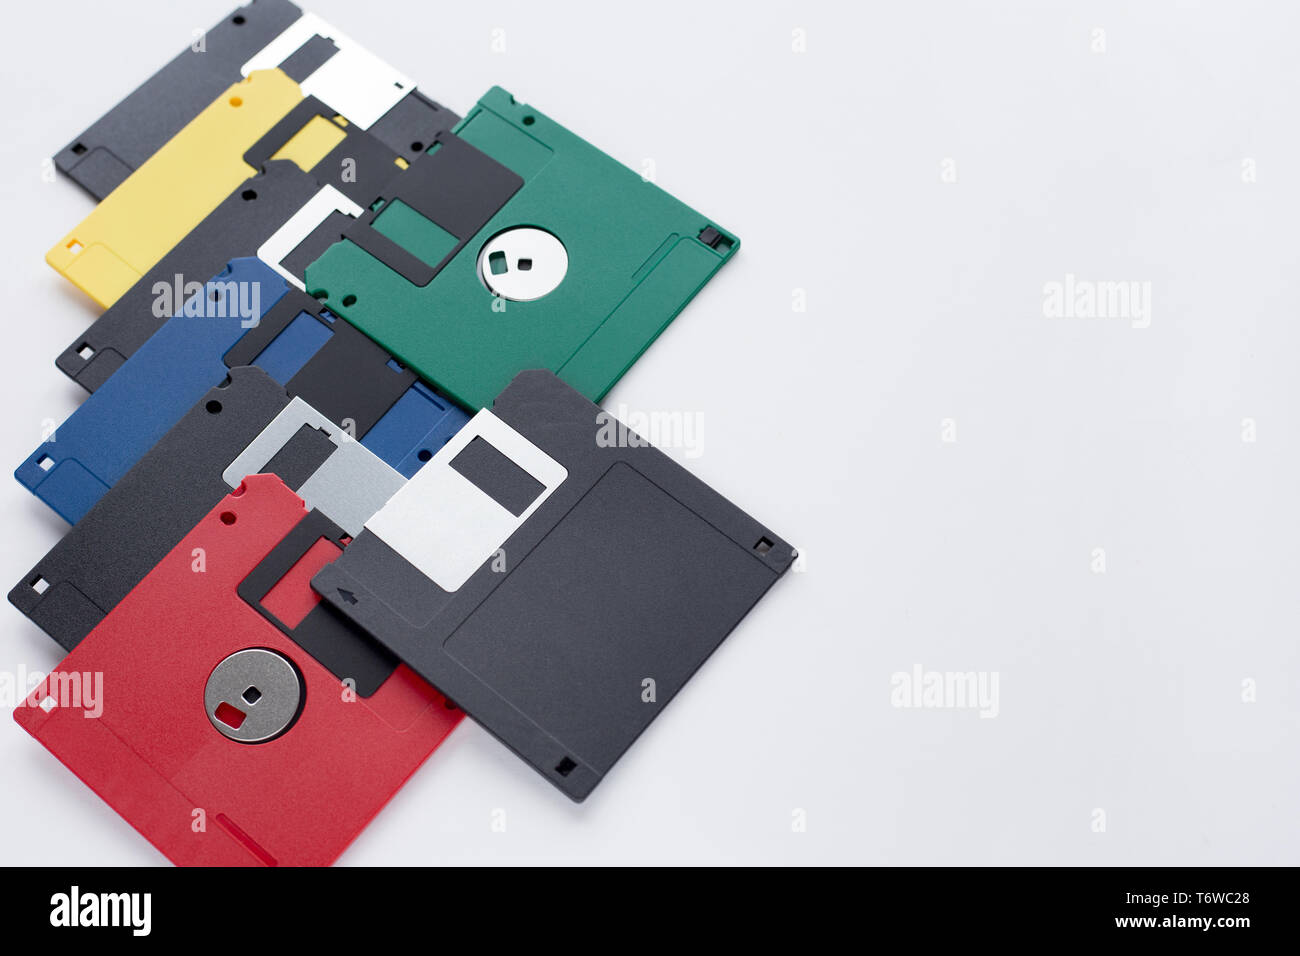 Group of multi-colored flexible disks isolated on a white background. Retro style. - Stock Image